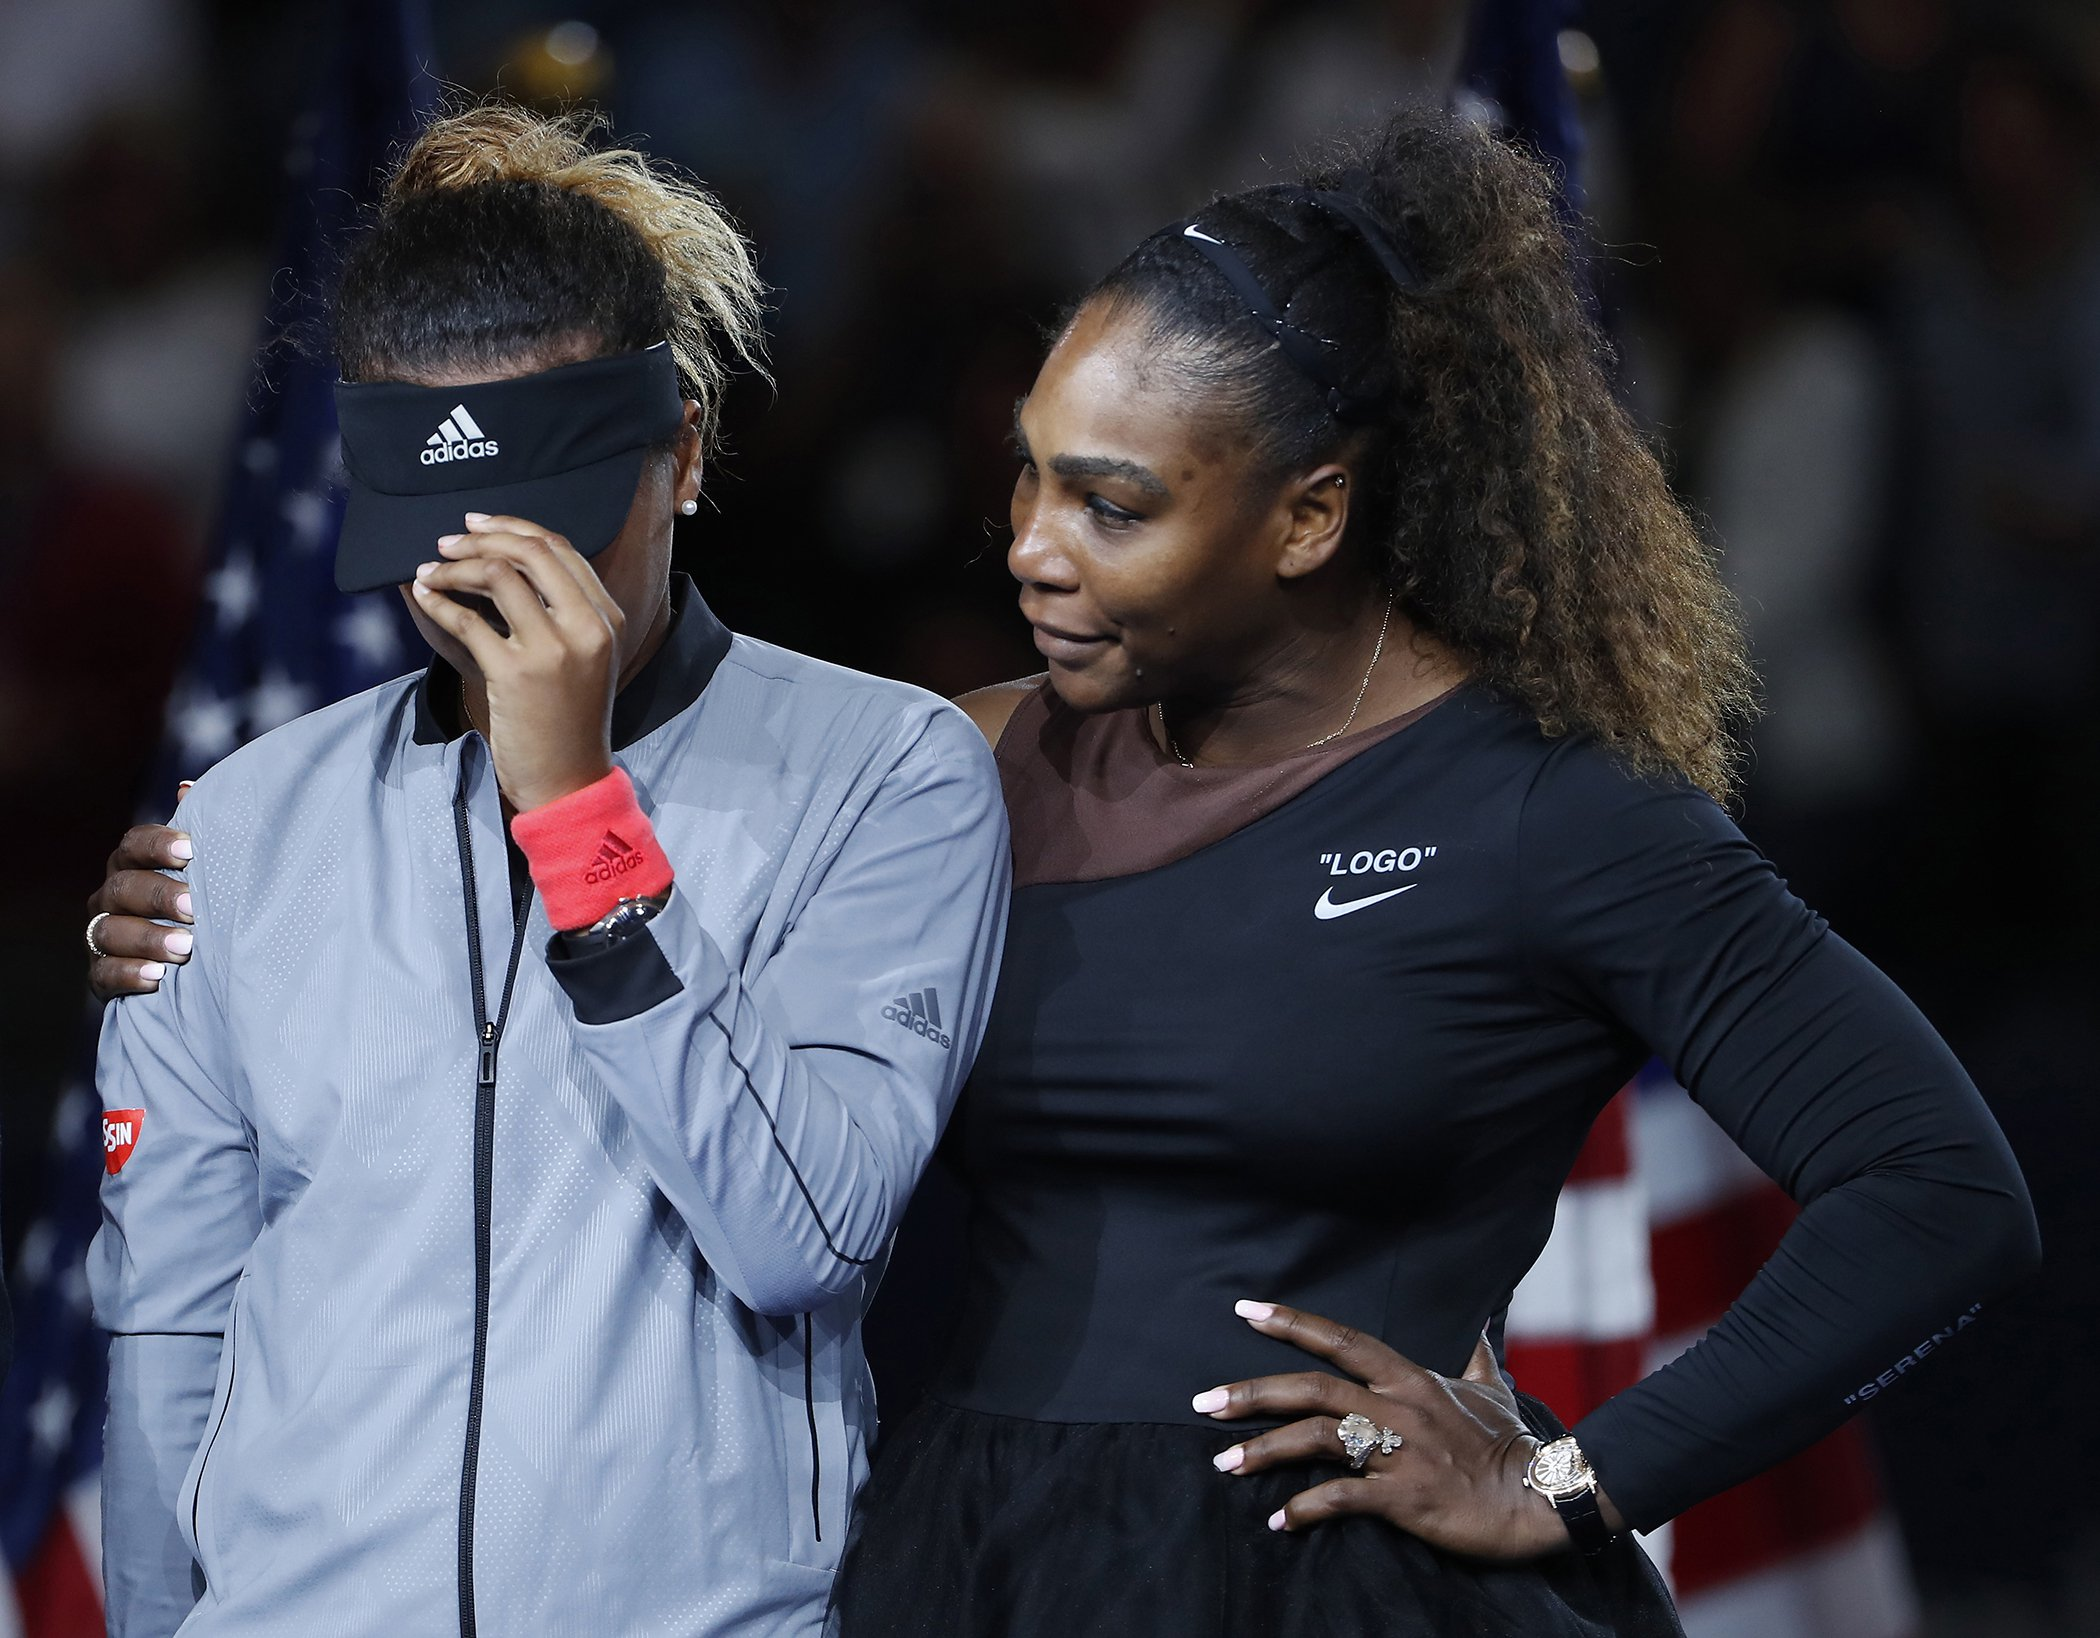 Serena-Williams-Naomi-Osaka-US-Open-Sexism.jpg